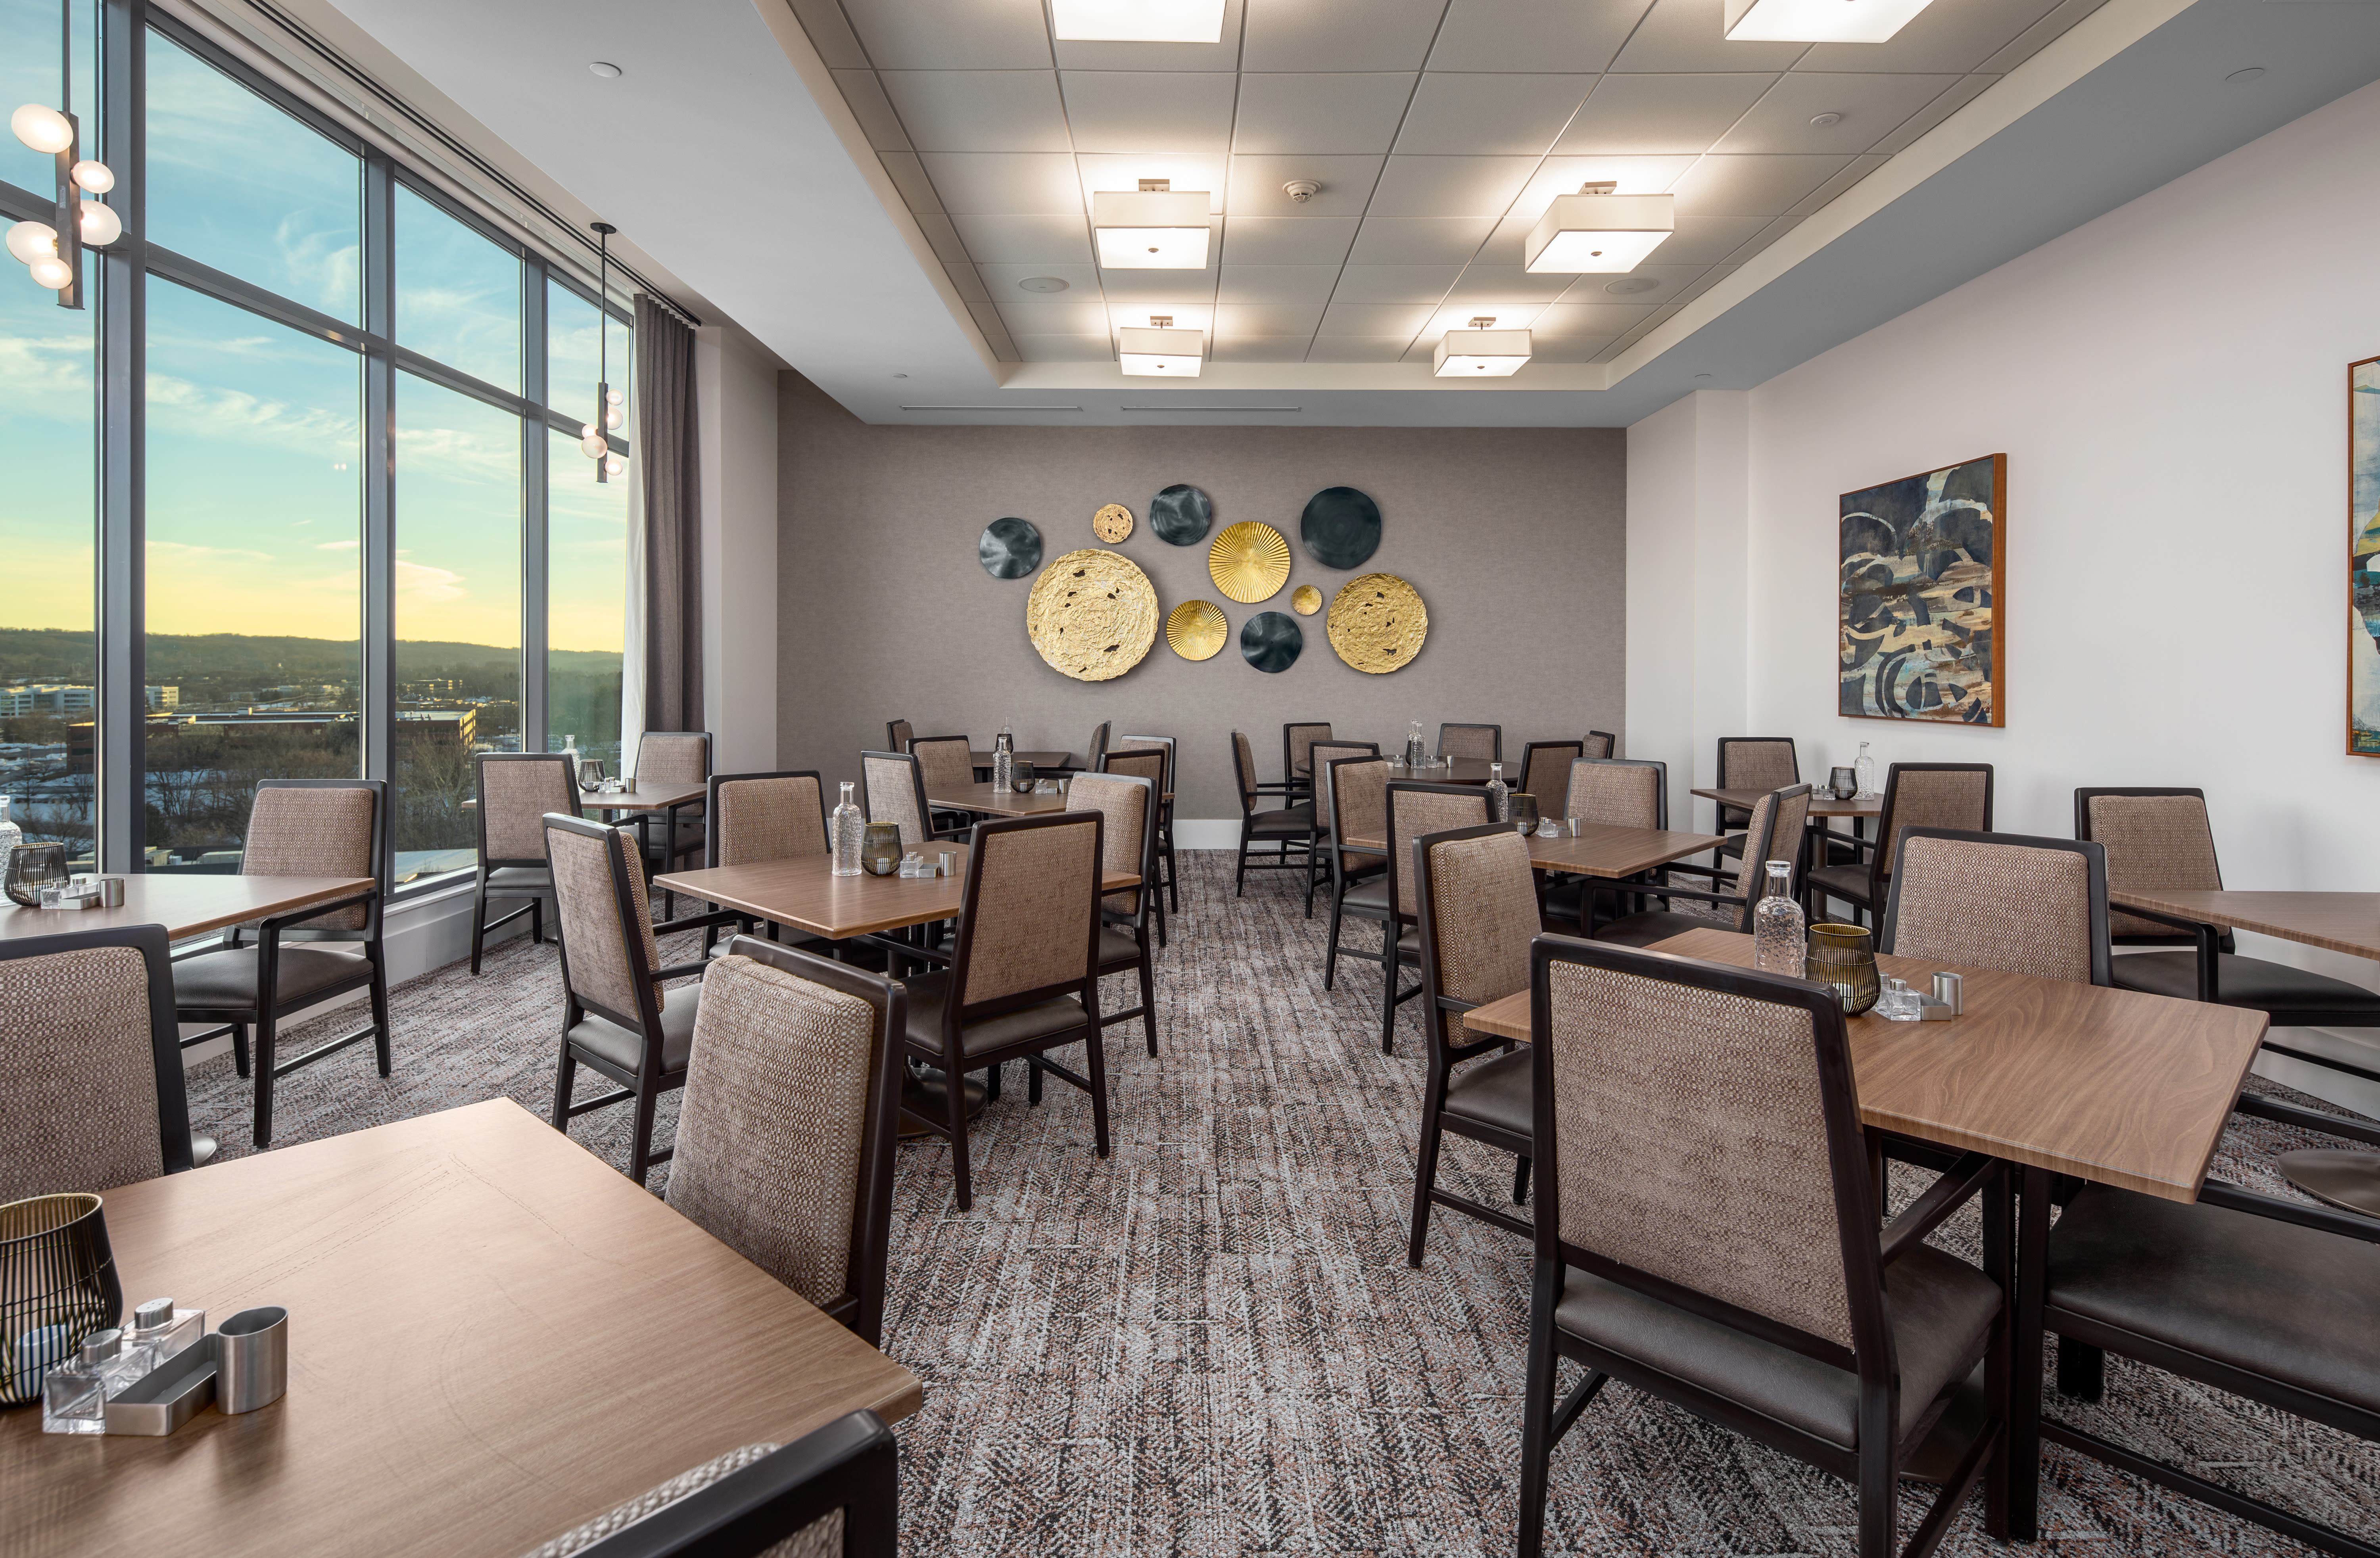 Dining area at Anthology of King of Prussia – Now Open in King of Prussia, Pennsylvania